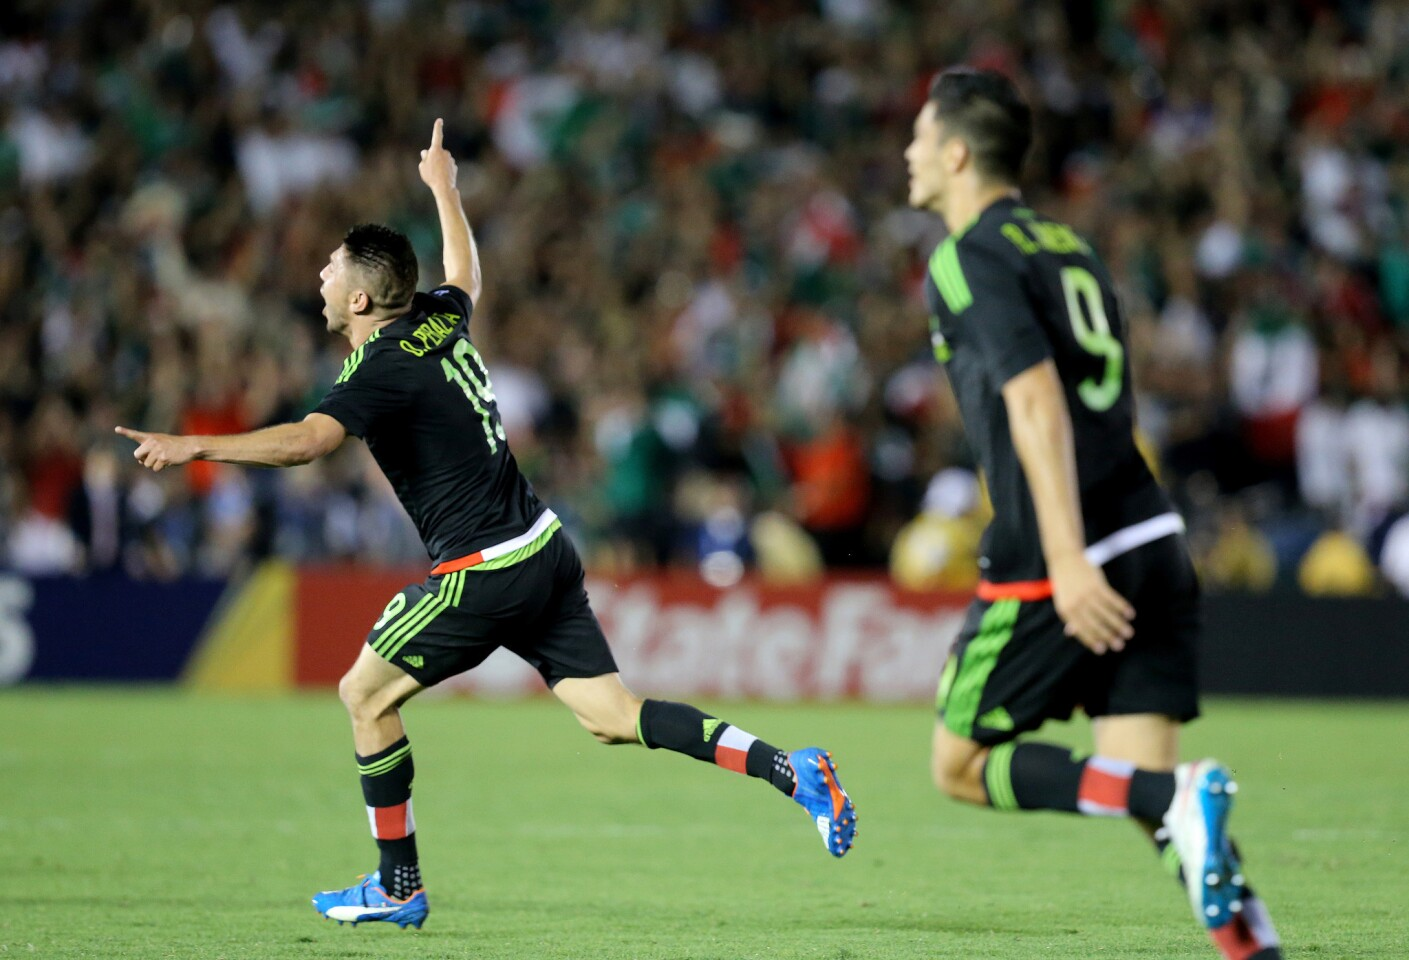 Mexico forward Oribe Peralta celebrates a goal against the U.S. in the first overtime period of a CONCACAF Cup game at the Rose Bowl.